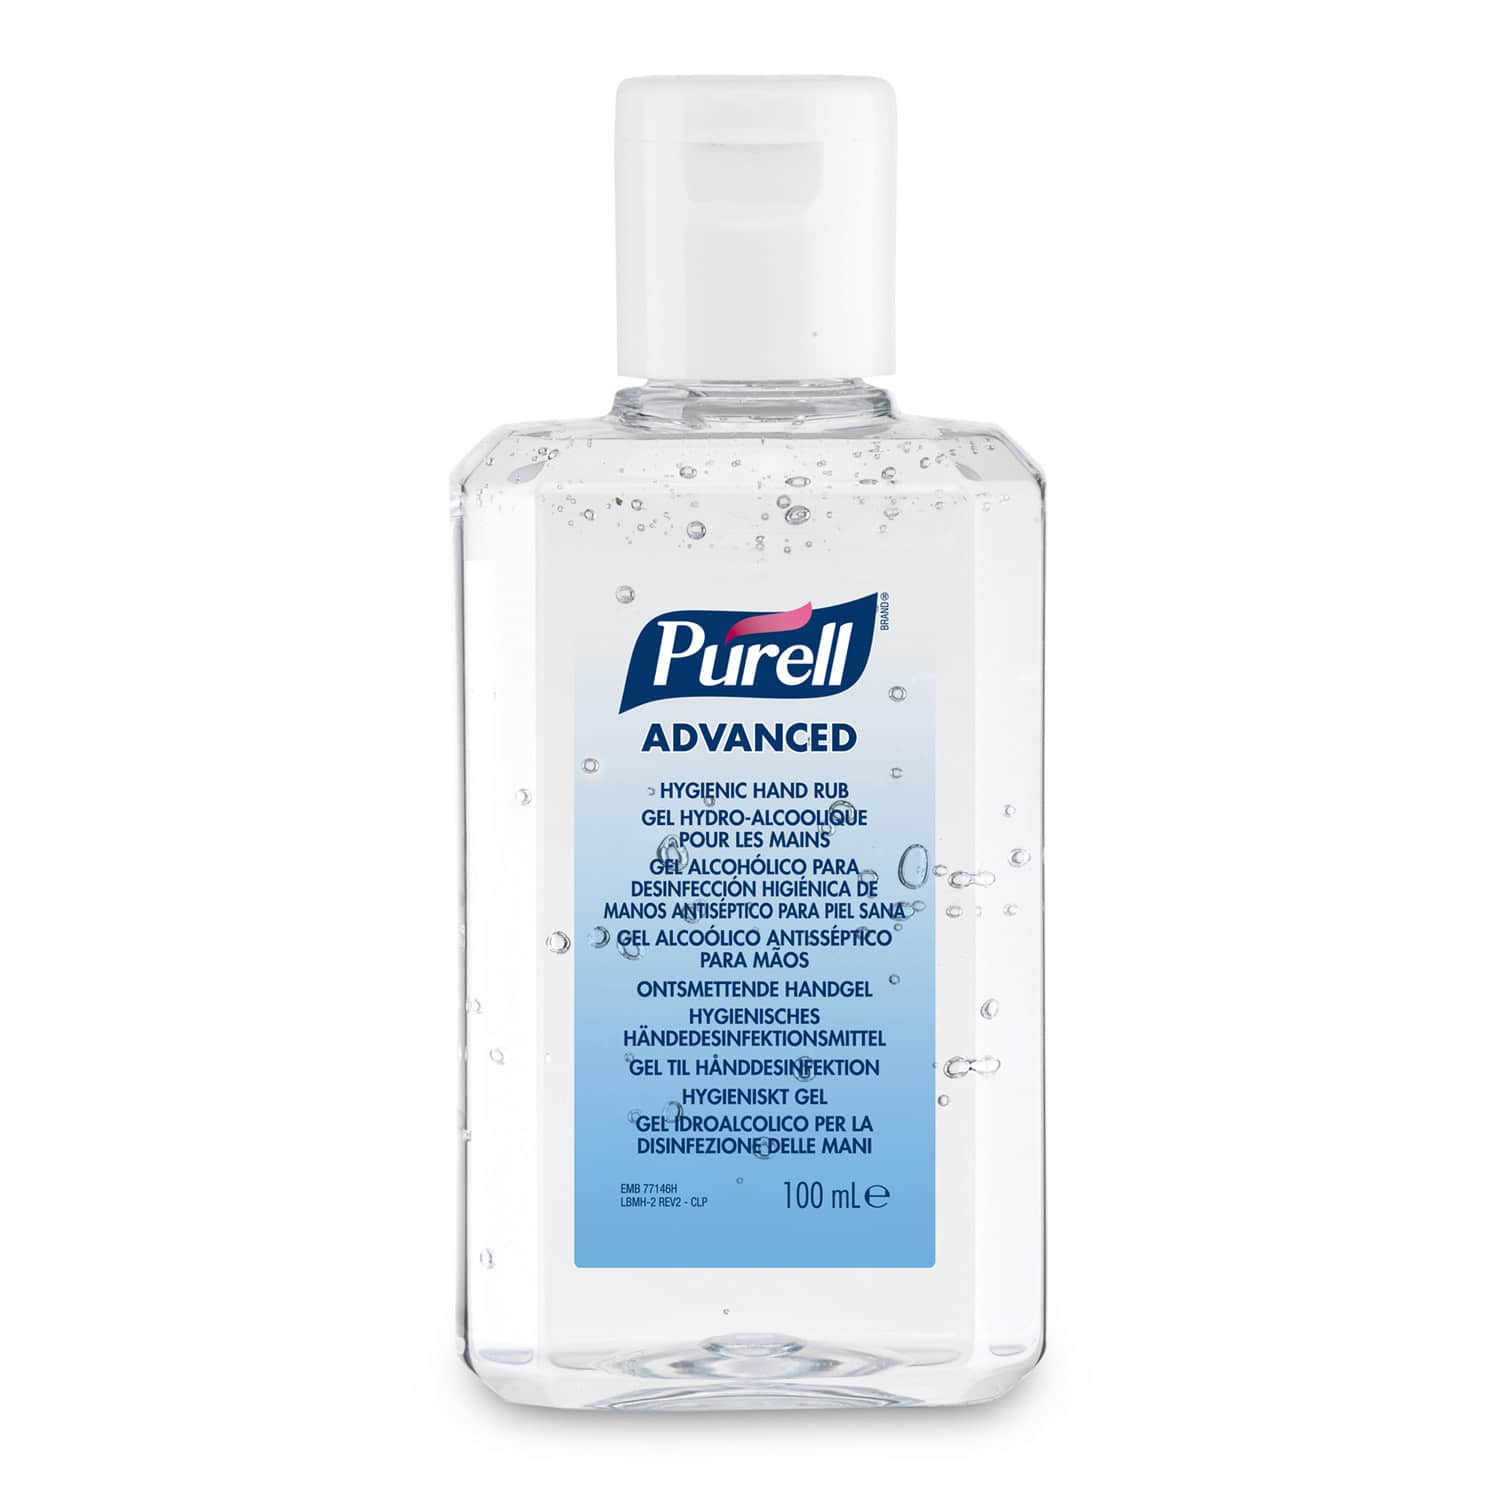 Purell Advanced Handedesinfektion Gunstig Bestellen